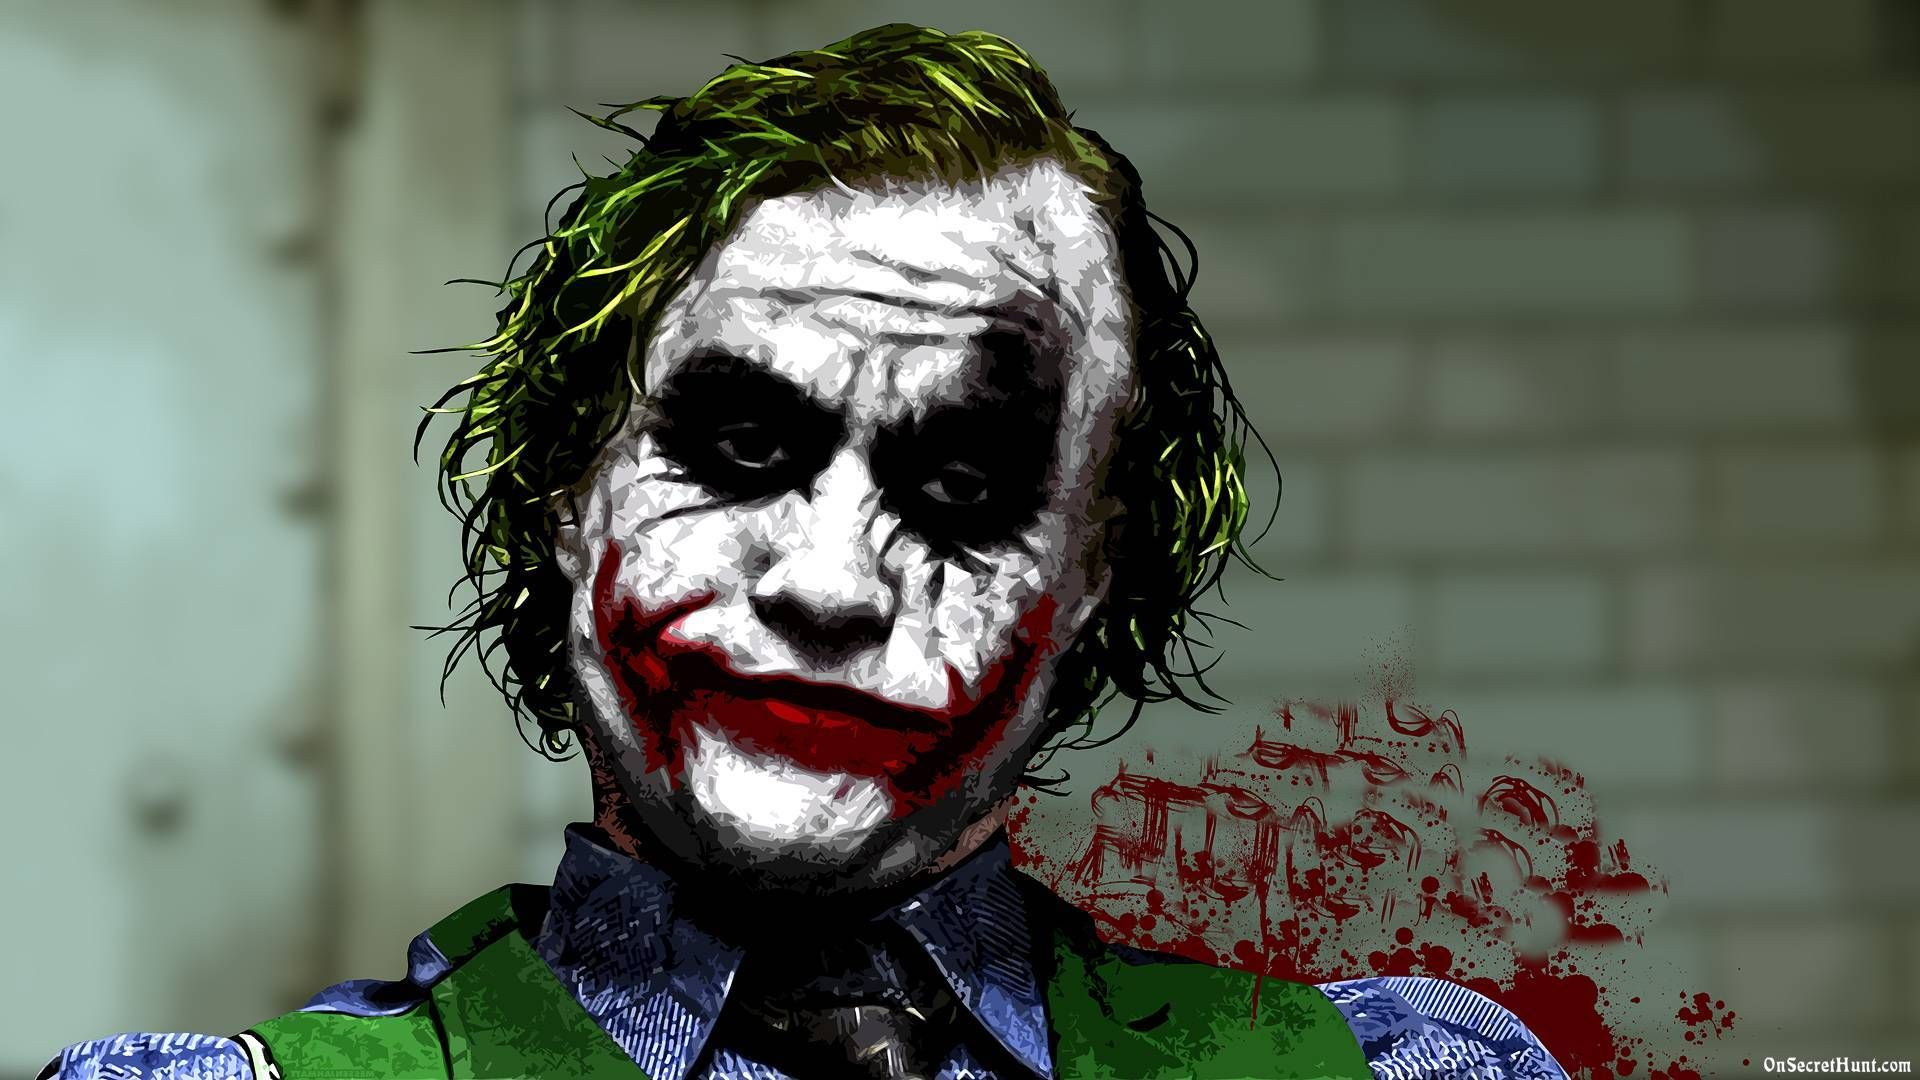 Download Batman Joker Wallpaper Hd Wallpapers 1920x1080px Joker Hd Wallpaper Joker Wallpapers Joker Painting